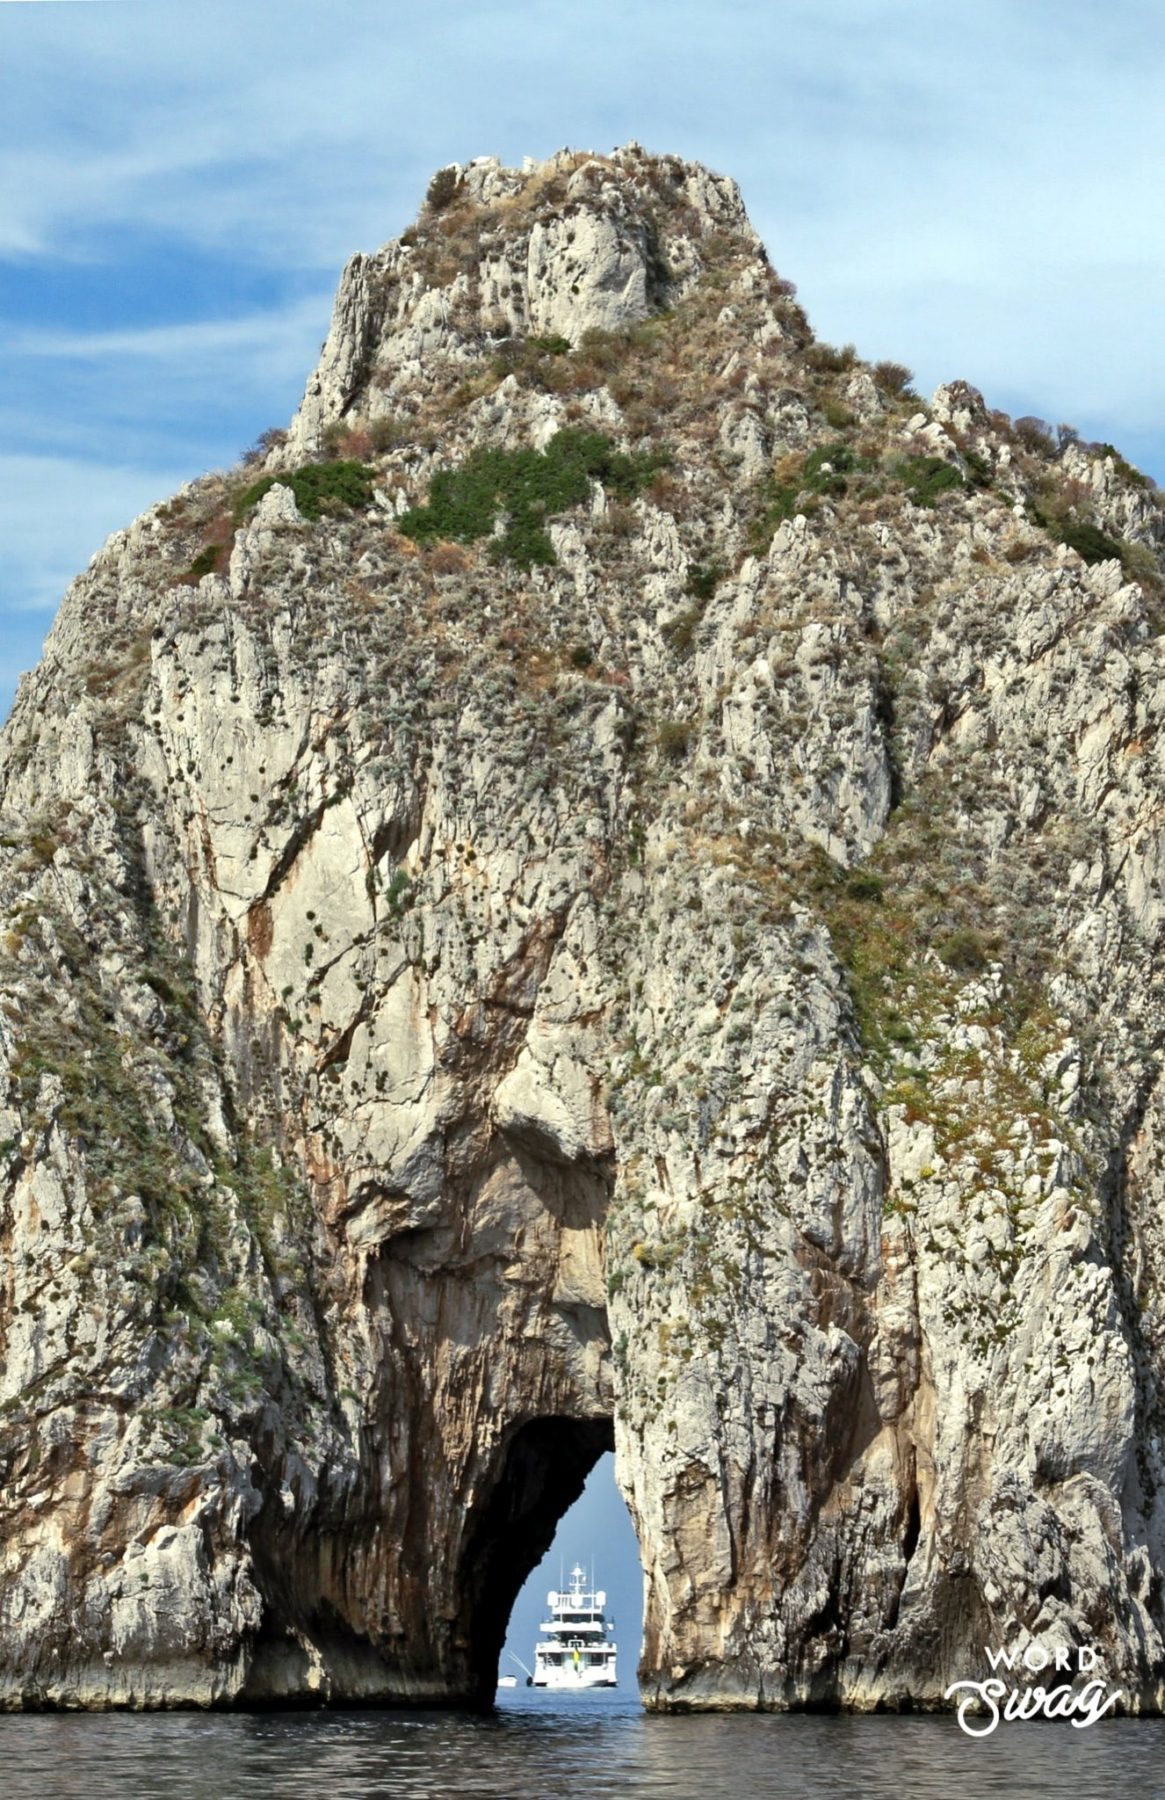 Caves in Capri